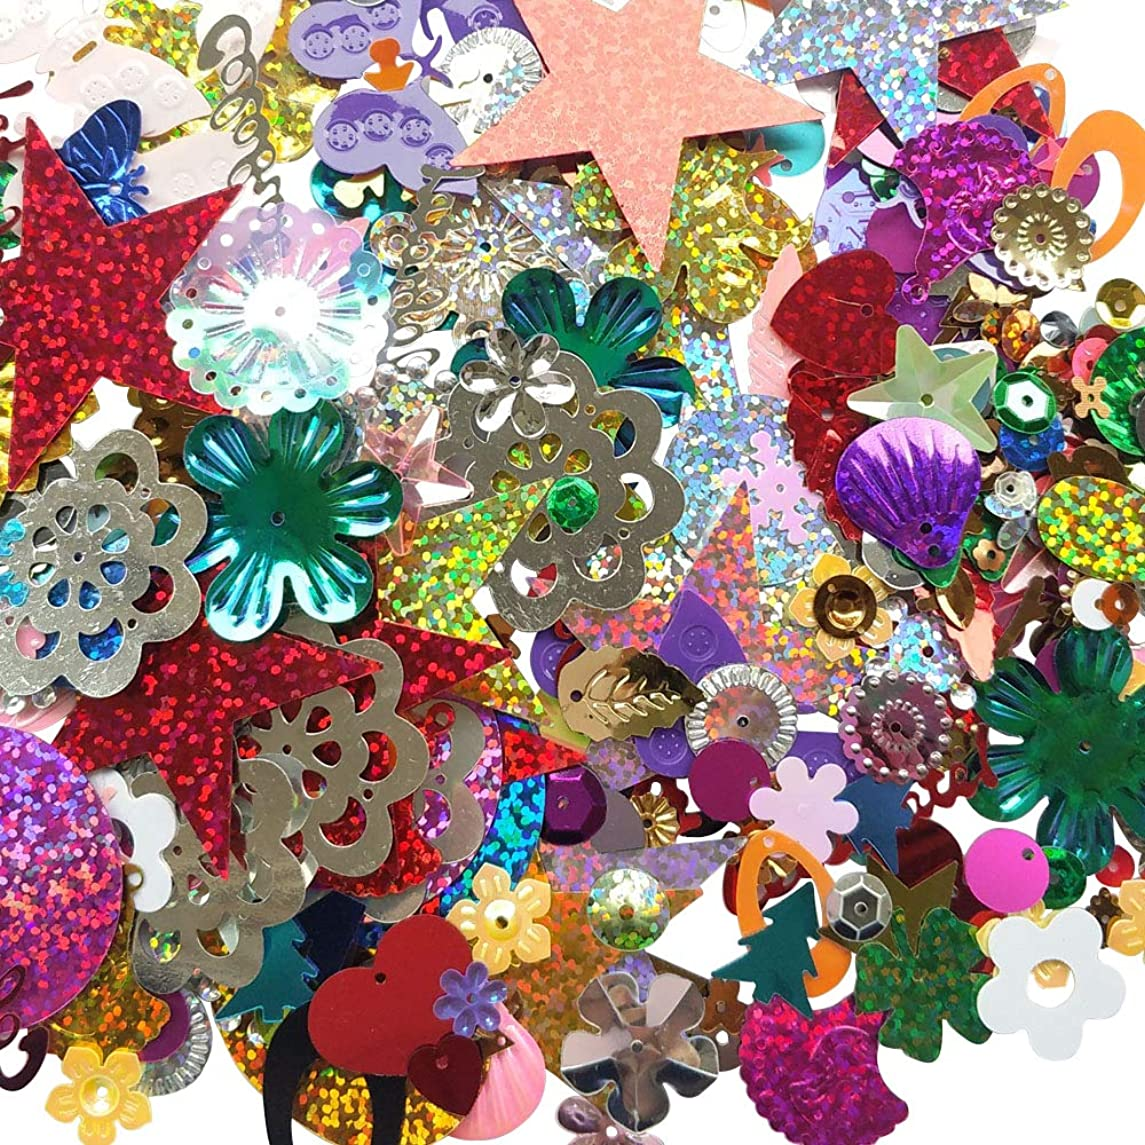 Chenkou Craft 1 Bag 100grams Assorted Styles Sequin for Wedding Christmas Clothes Jewelry Sequins (Assorted 100grams)